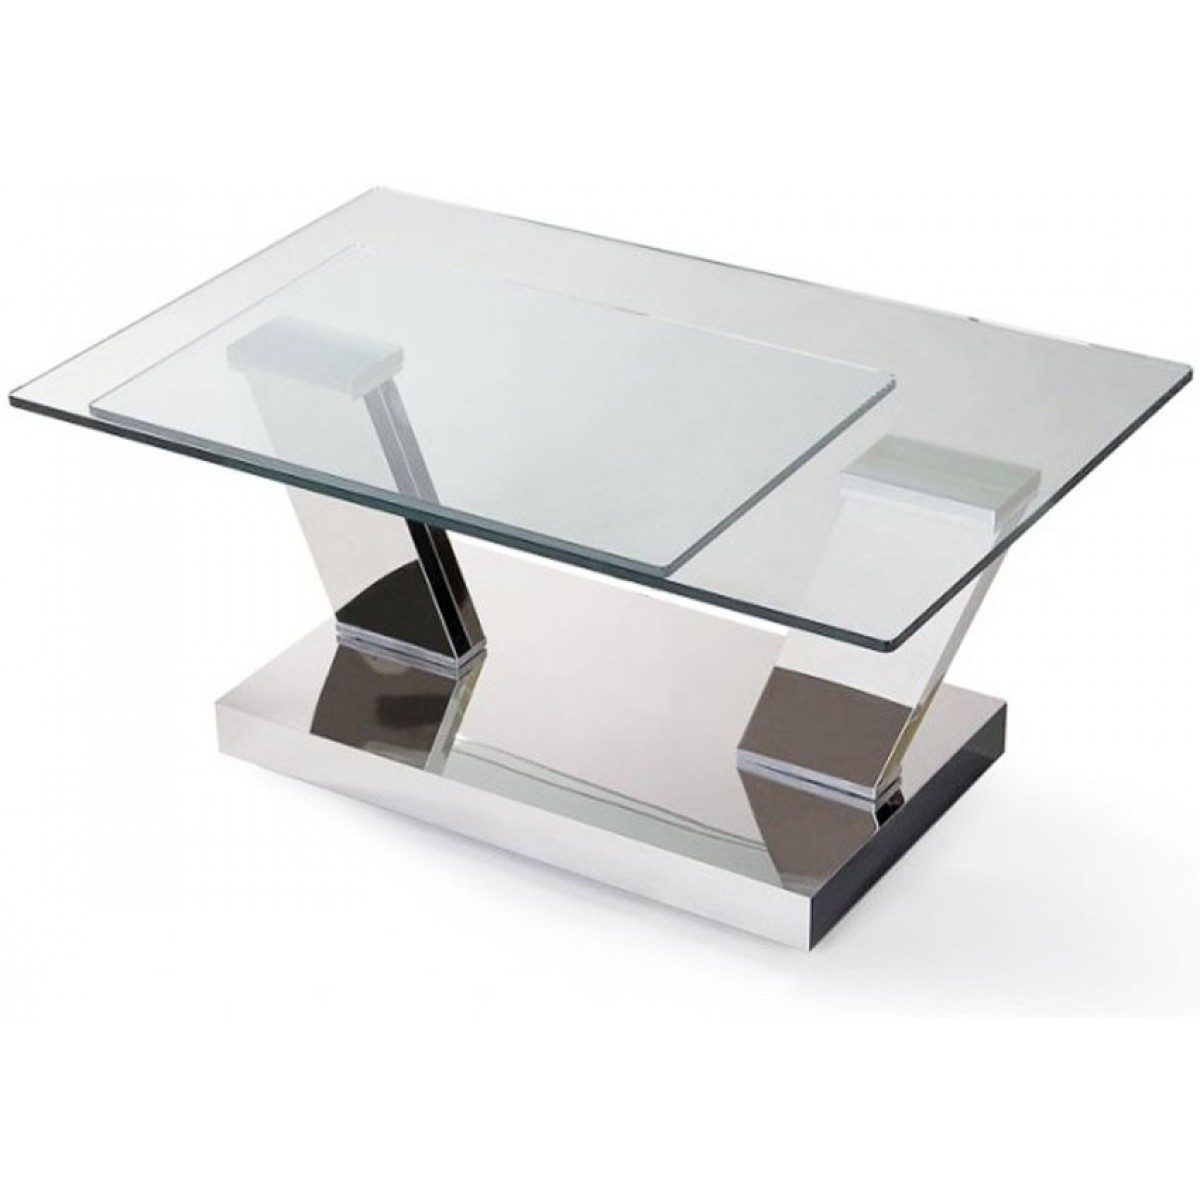 Table basse double plateaux transparents carr s chrom s - Table pliante rectangulaire double plateaux ...